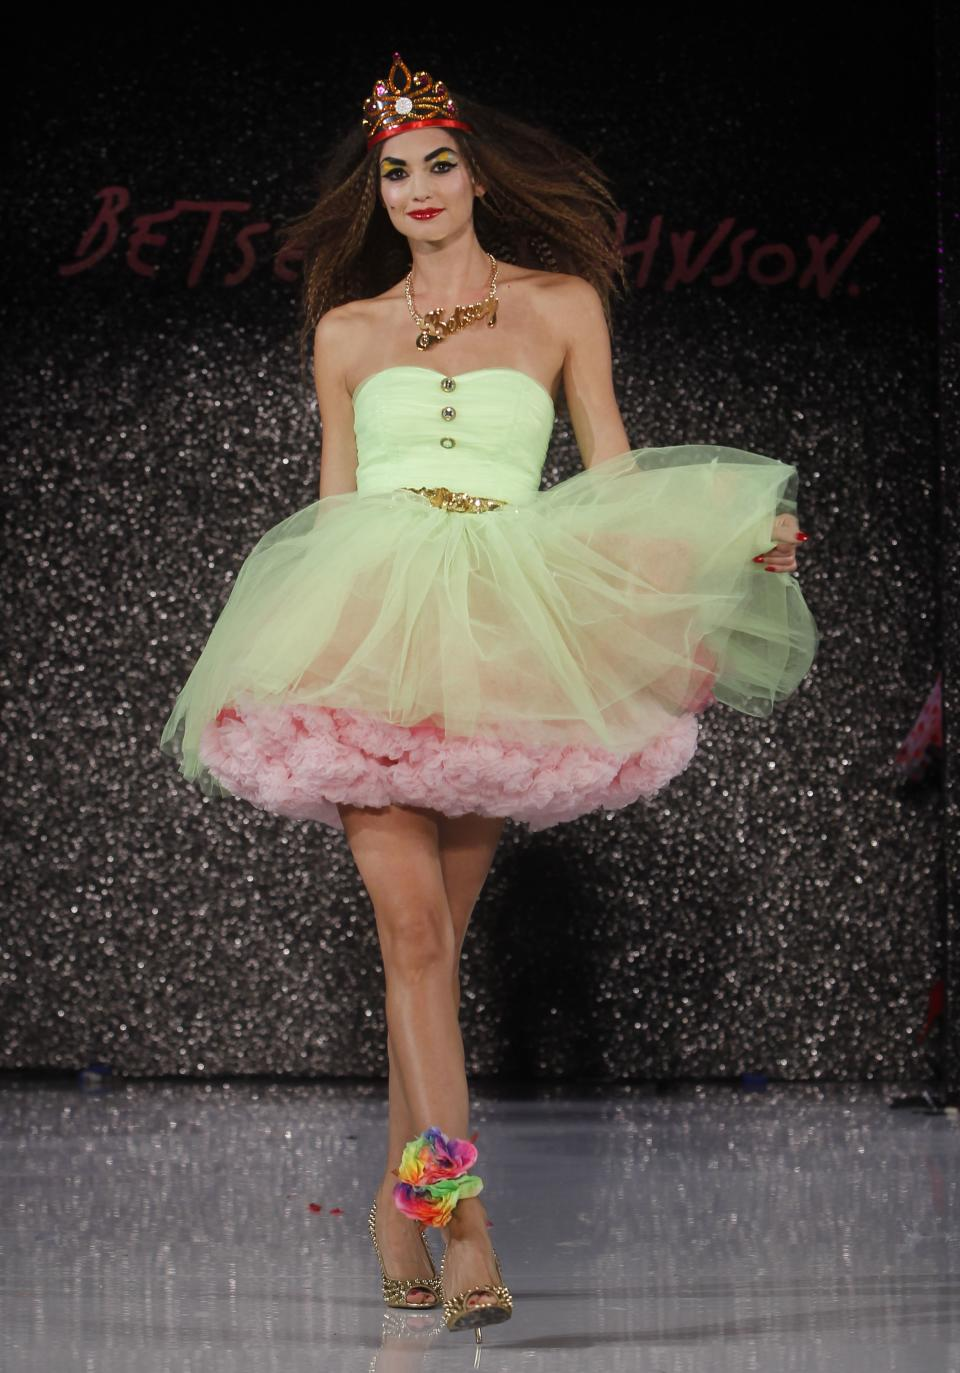 The Betsey Johnson Spring 2013 collection is modeled during Fashion Week, Tuesday, Sept. 11, 2012, in New York. (AP Photo/Jason DeCrow)